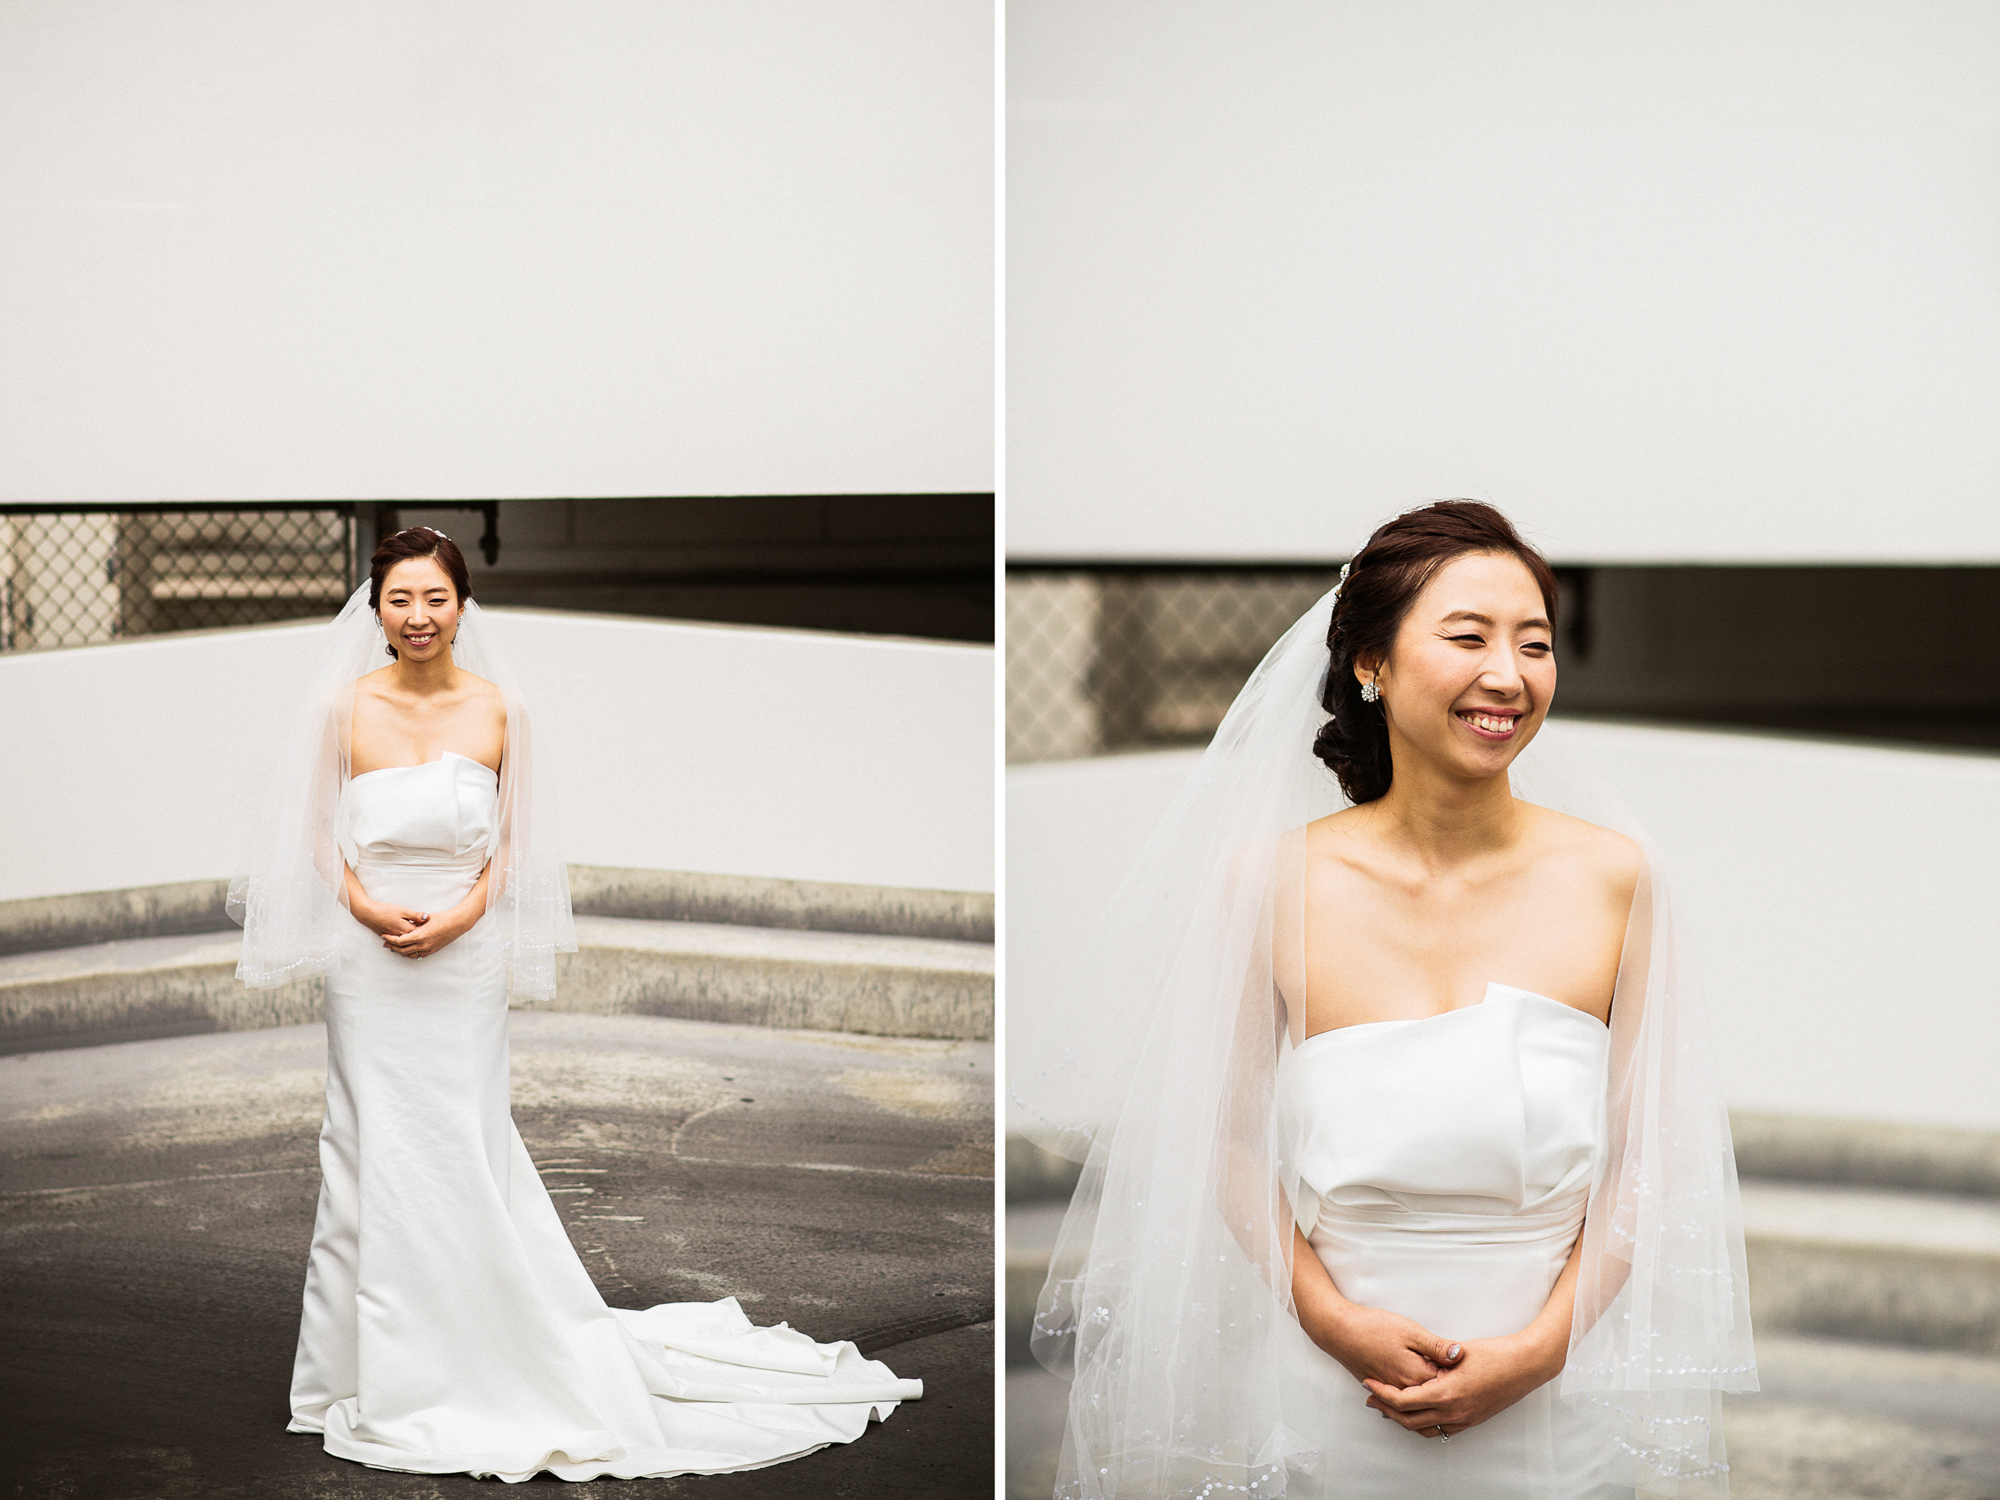 ©Isaiah & Taylor Photography - Destination Wedding Photographers - Downtown Los Angeles Parking Lot Rooftop Wedding-003.jpg